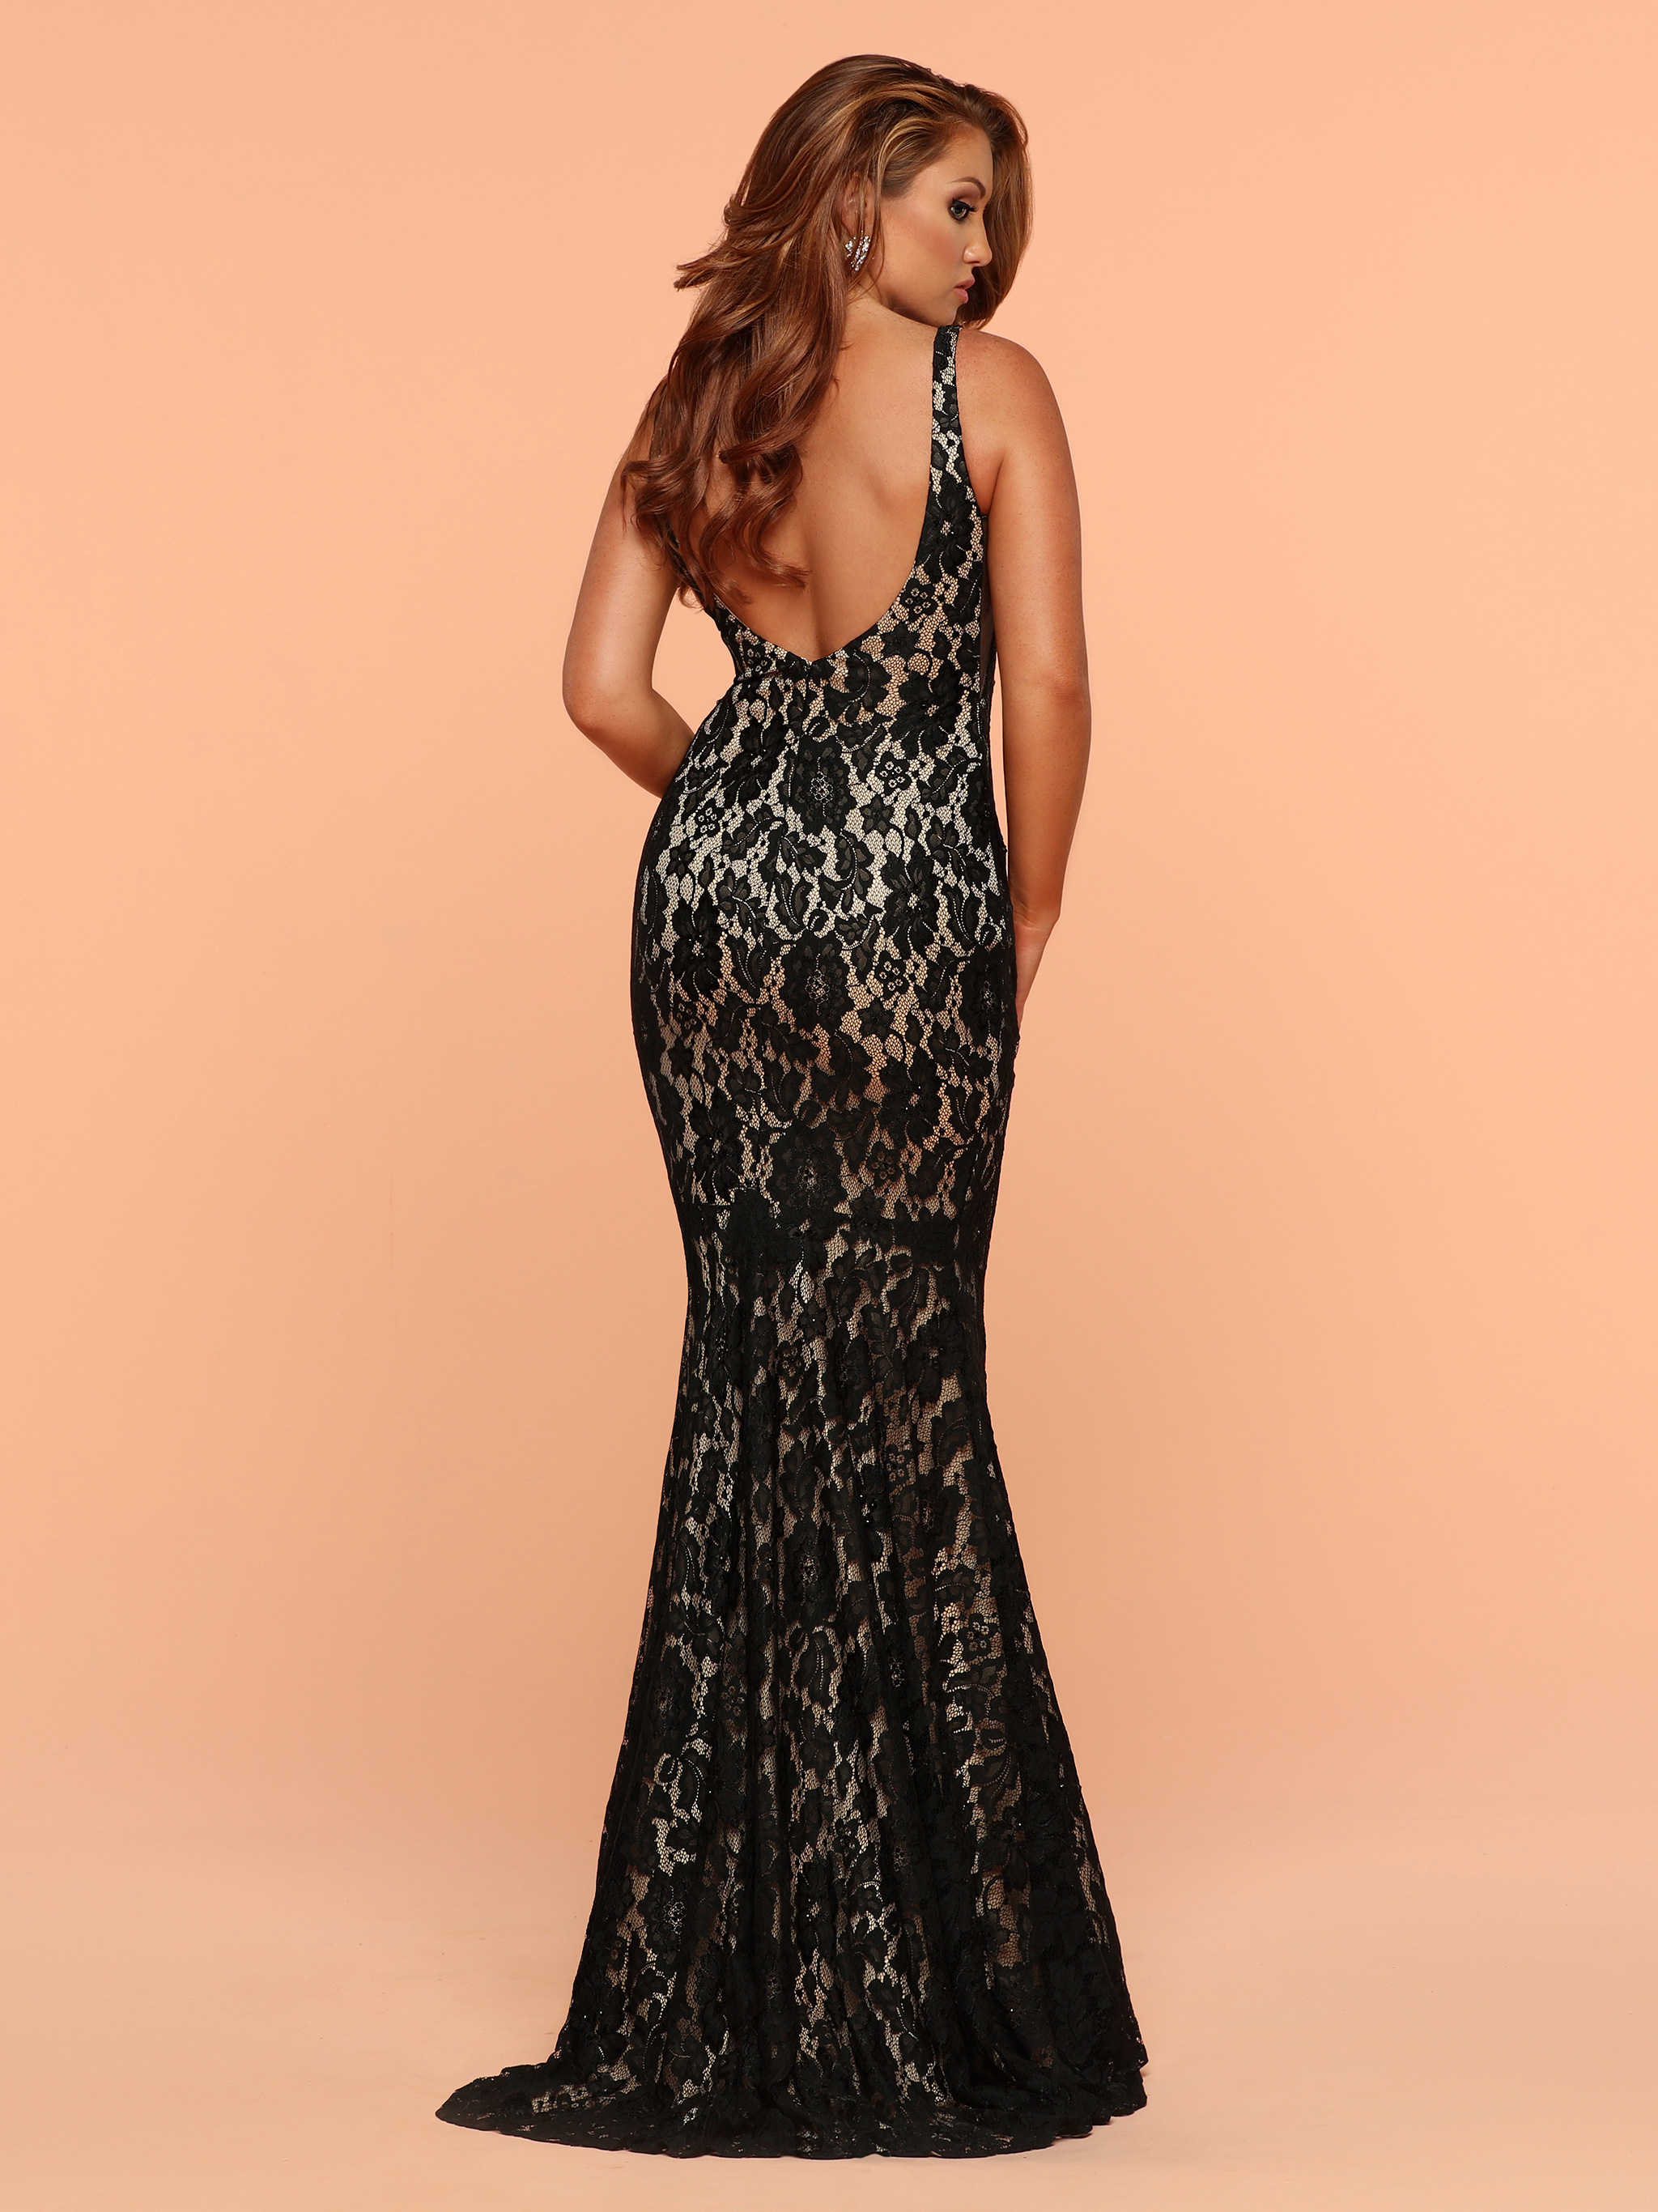 Image showing back view of style #71812